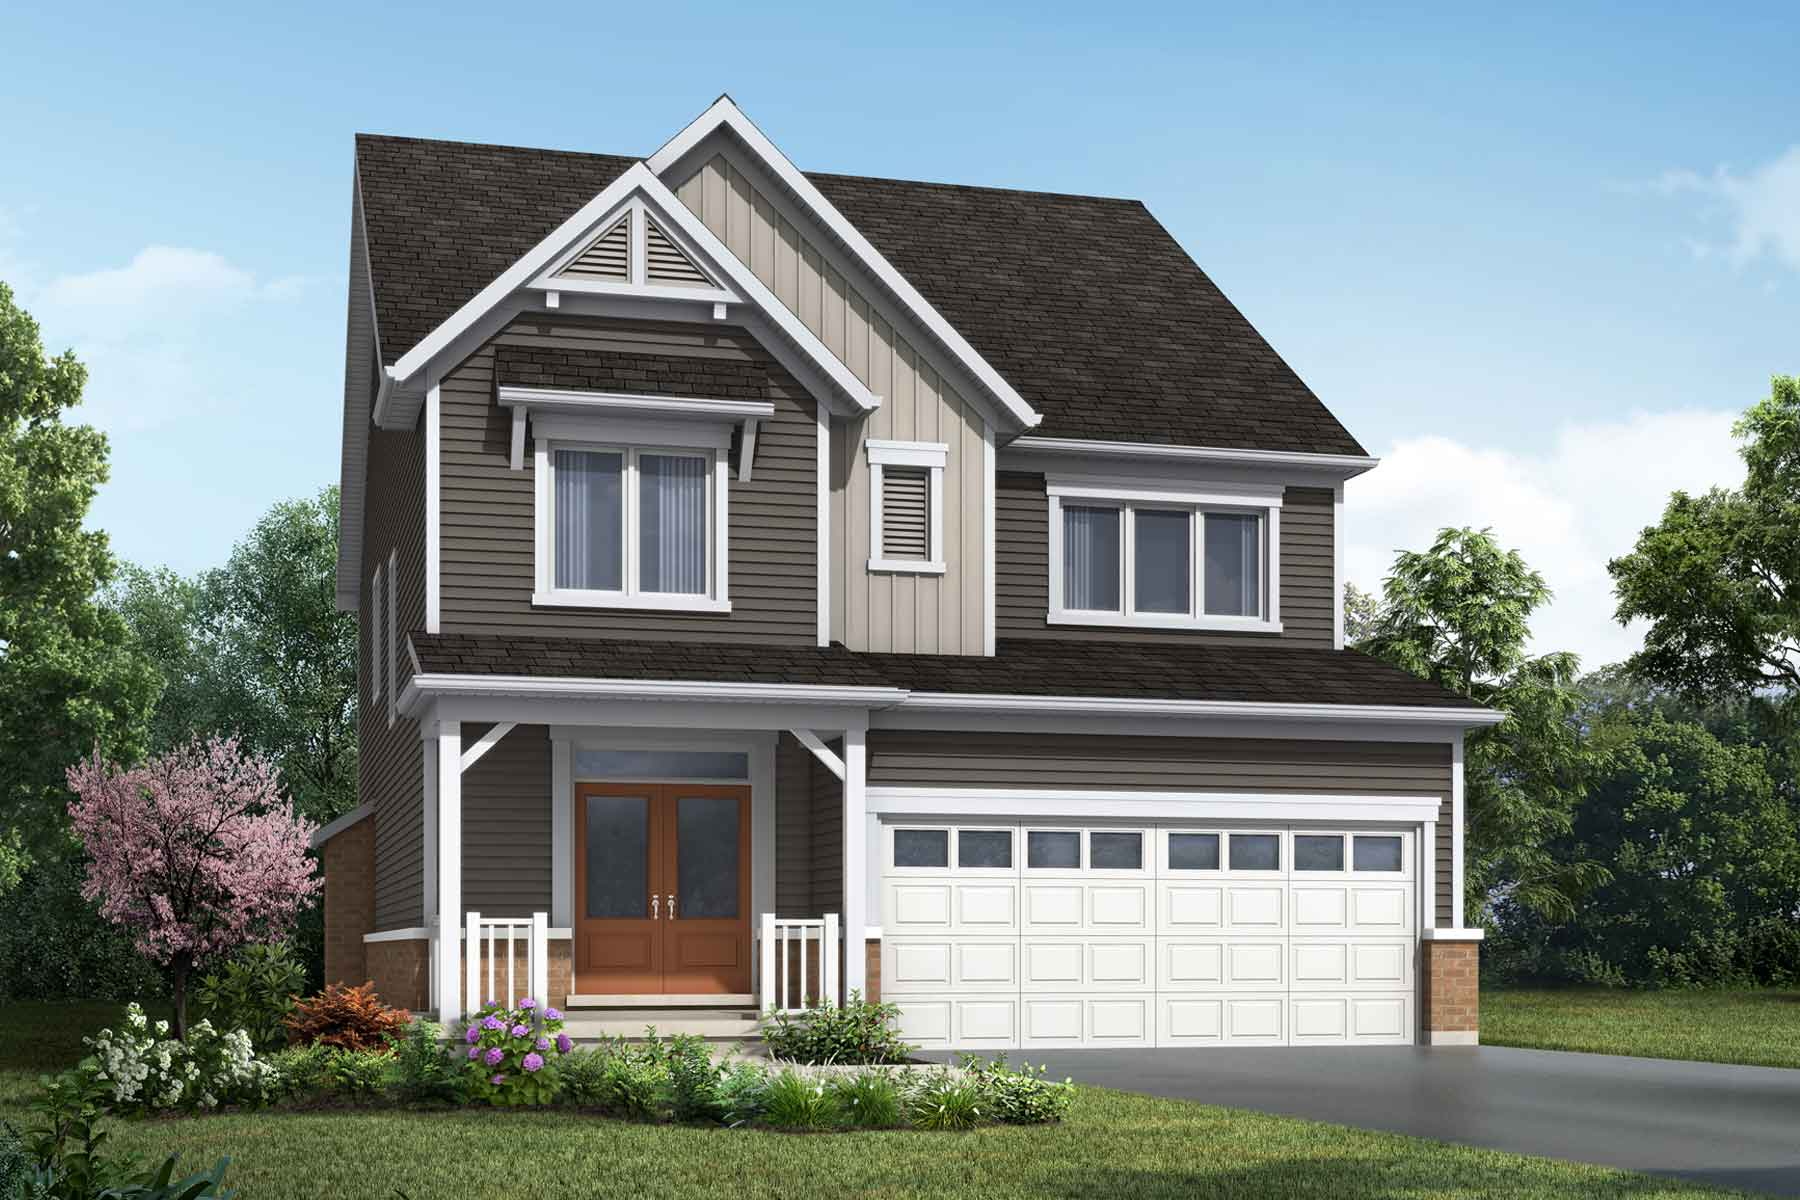 The Hawkesville Plan farmhouse_southestates_hawkesville at Wildflower Crossing in Kitchener Ontario by Mattamy Homes